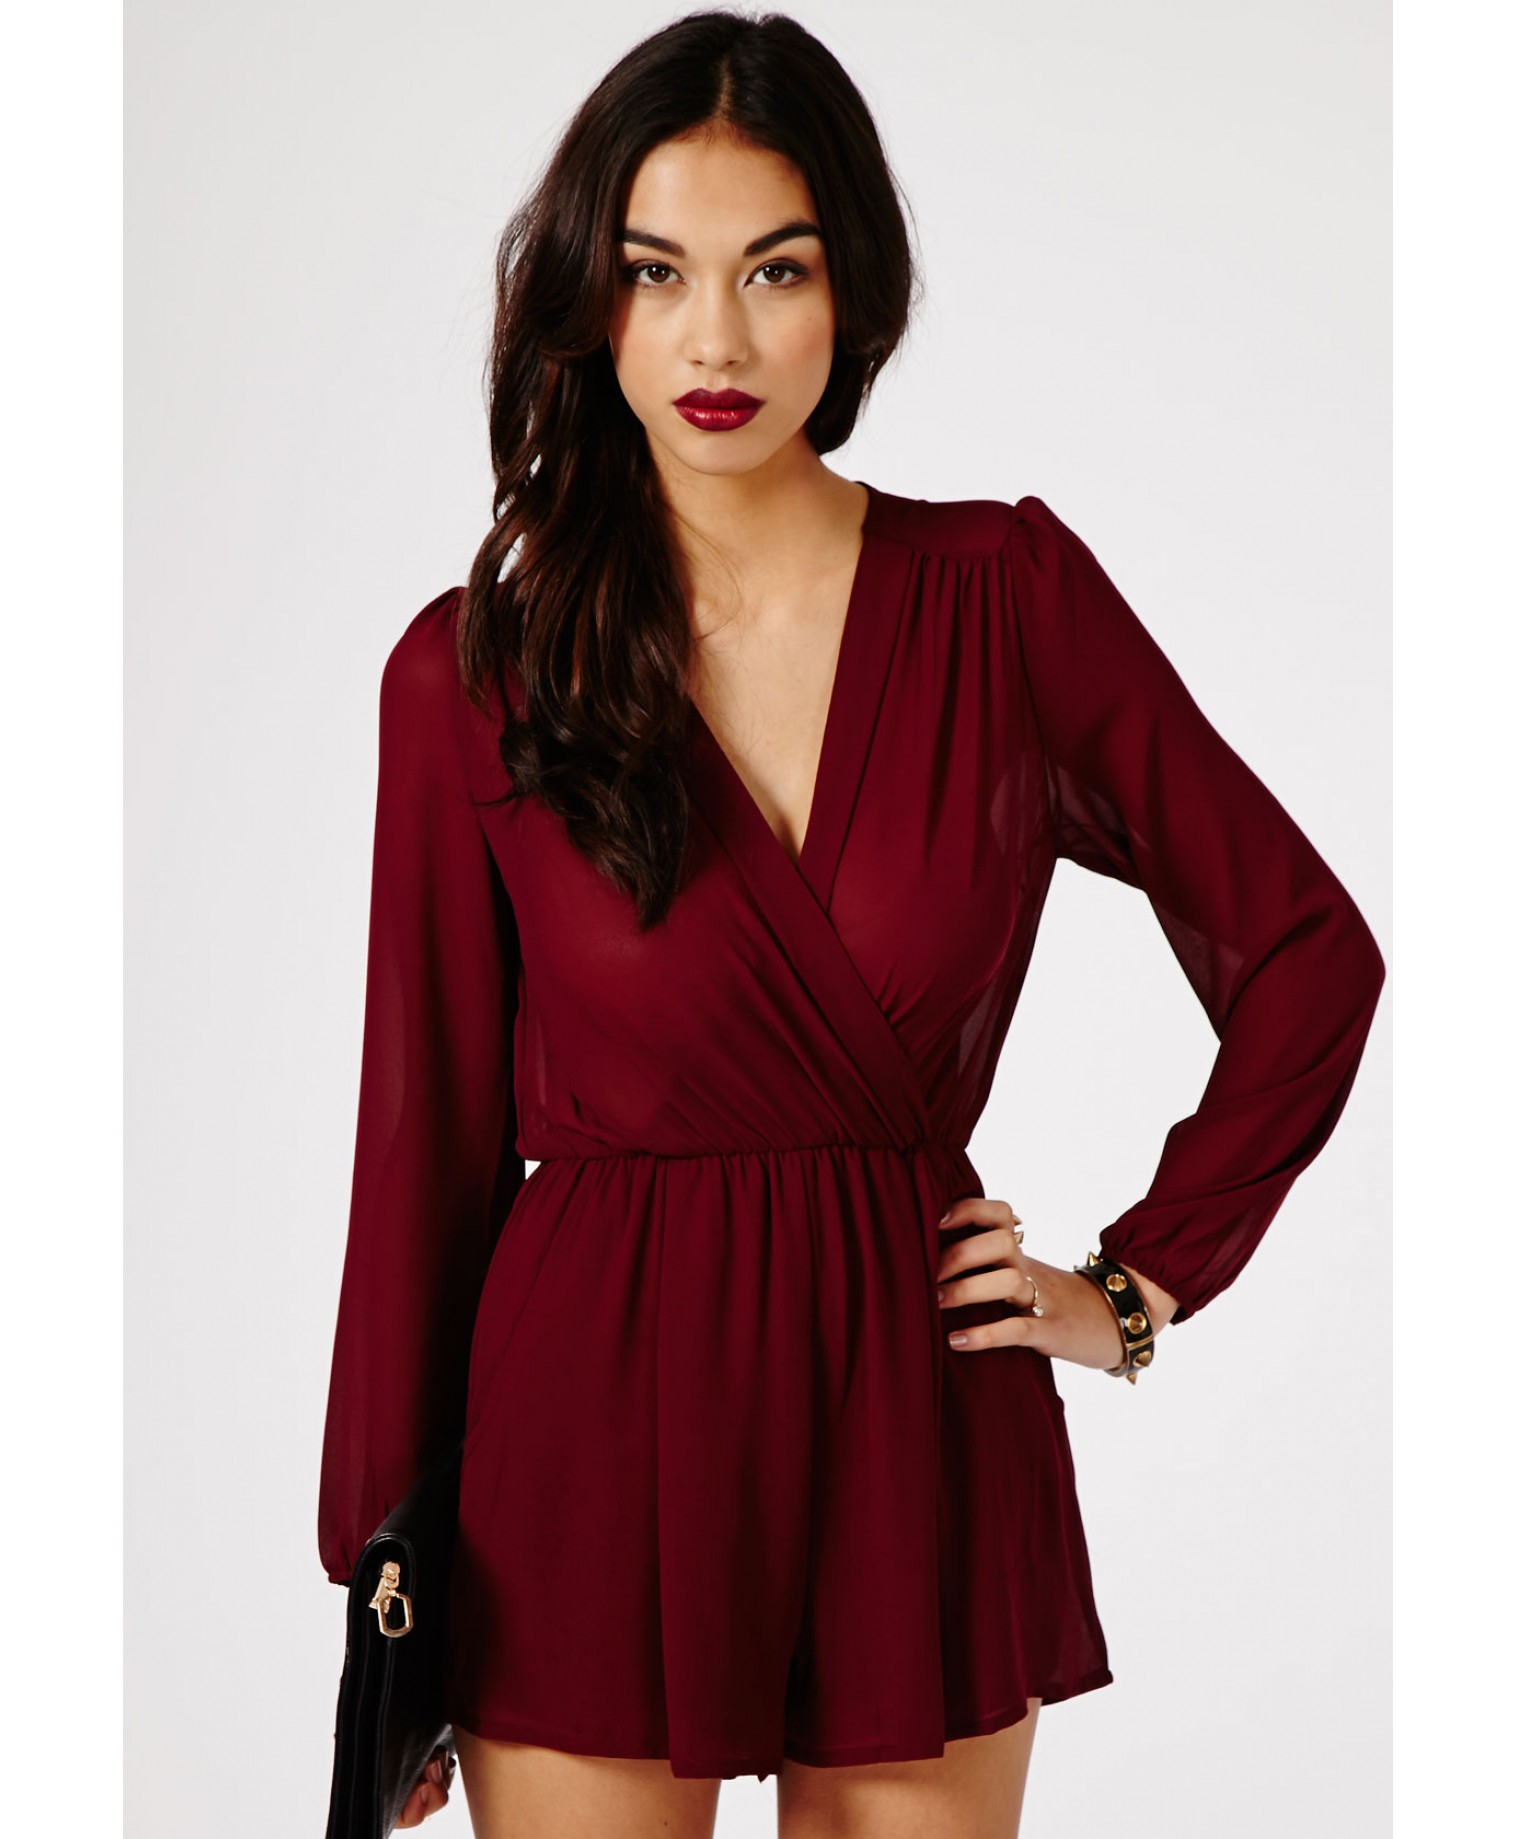 46773db985 Lyst - Missguided Colate Crossover Chiffon Playsuit in Burgundy in Red